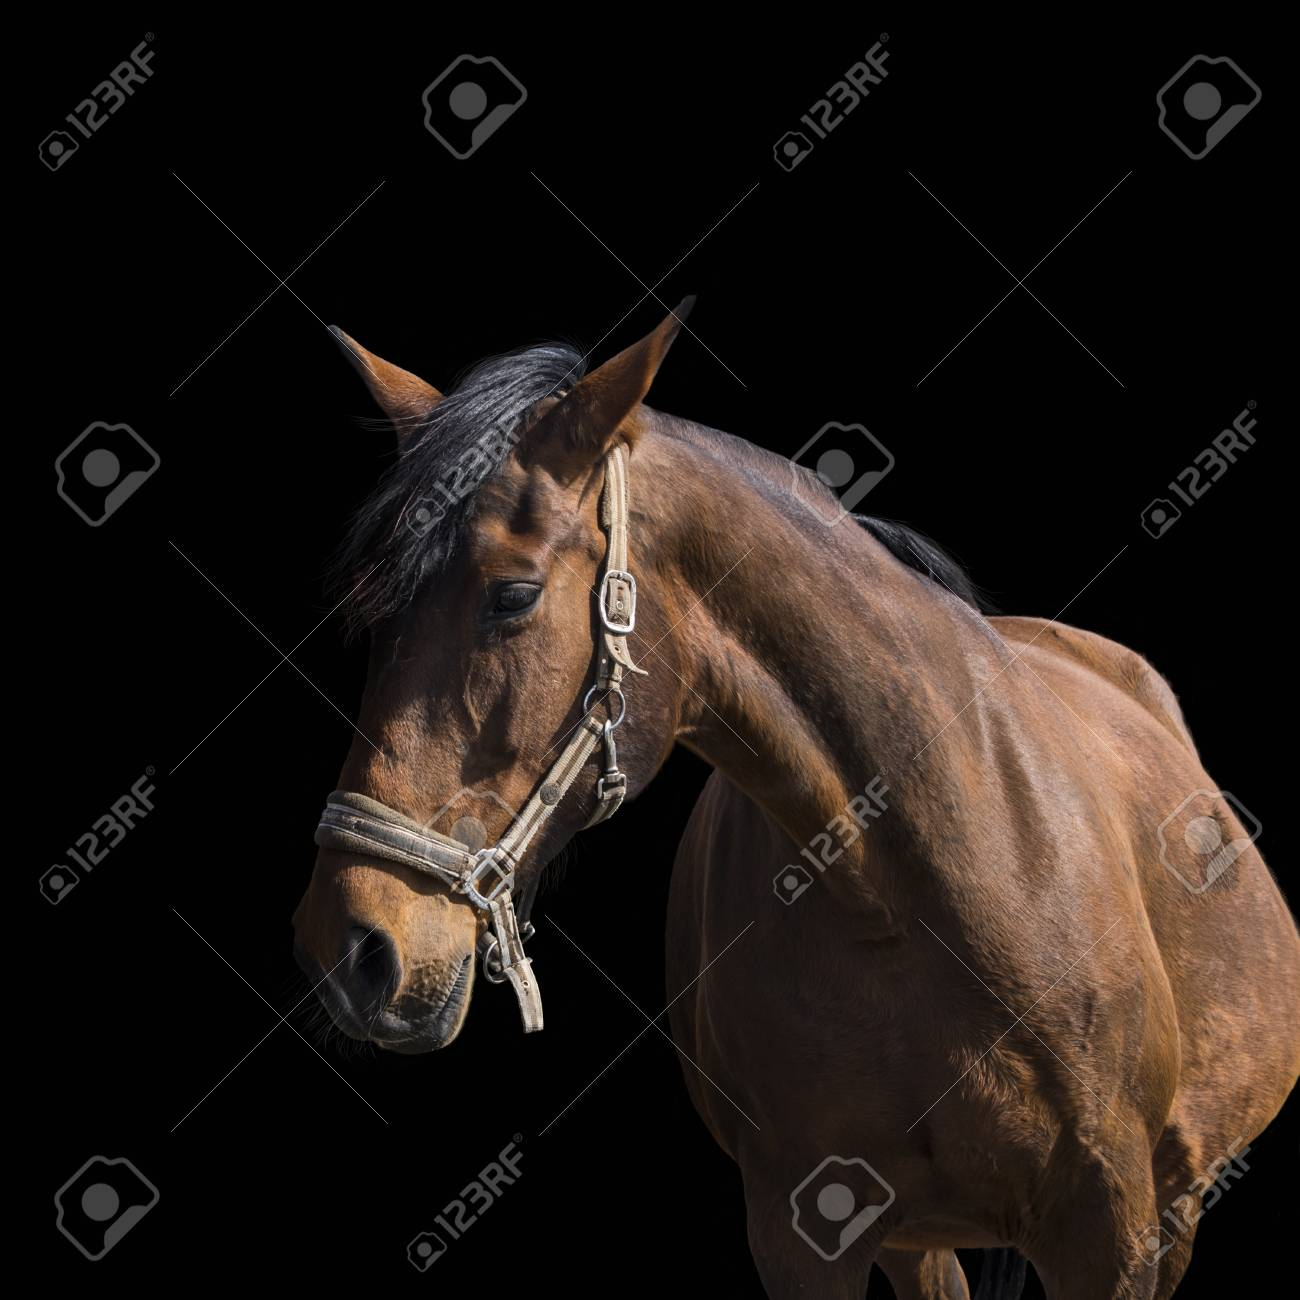 Bay Horse Portrait Over A Black Background Close Up Beautiful Stock Photo Picture And Royalty Free Image Image 121787614